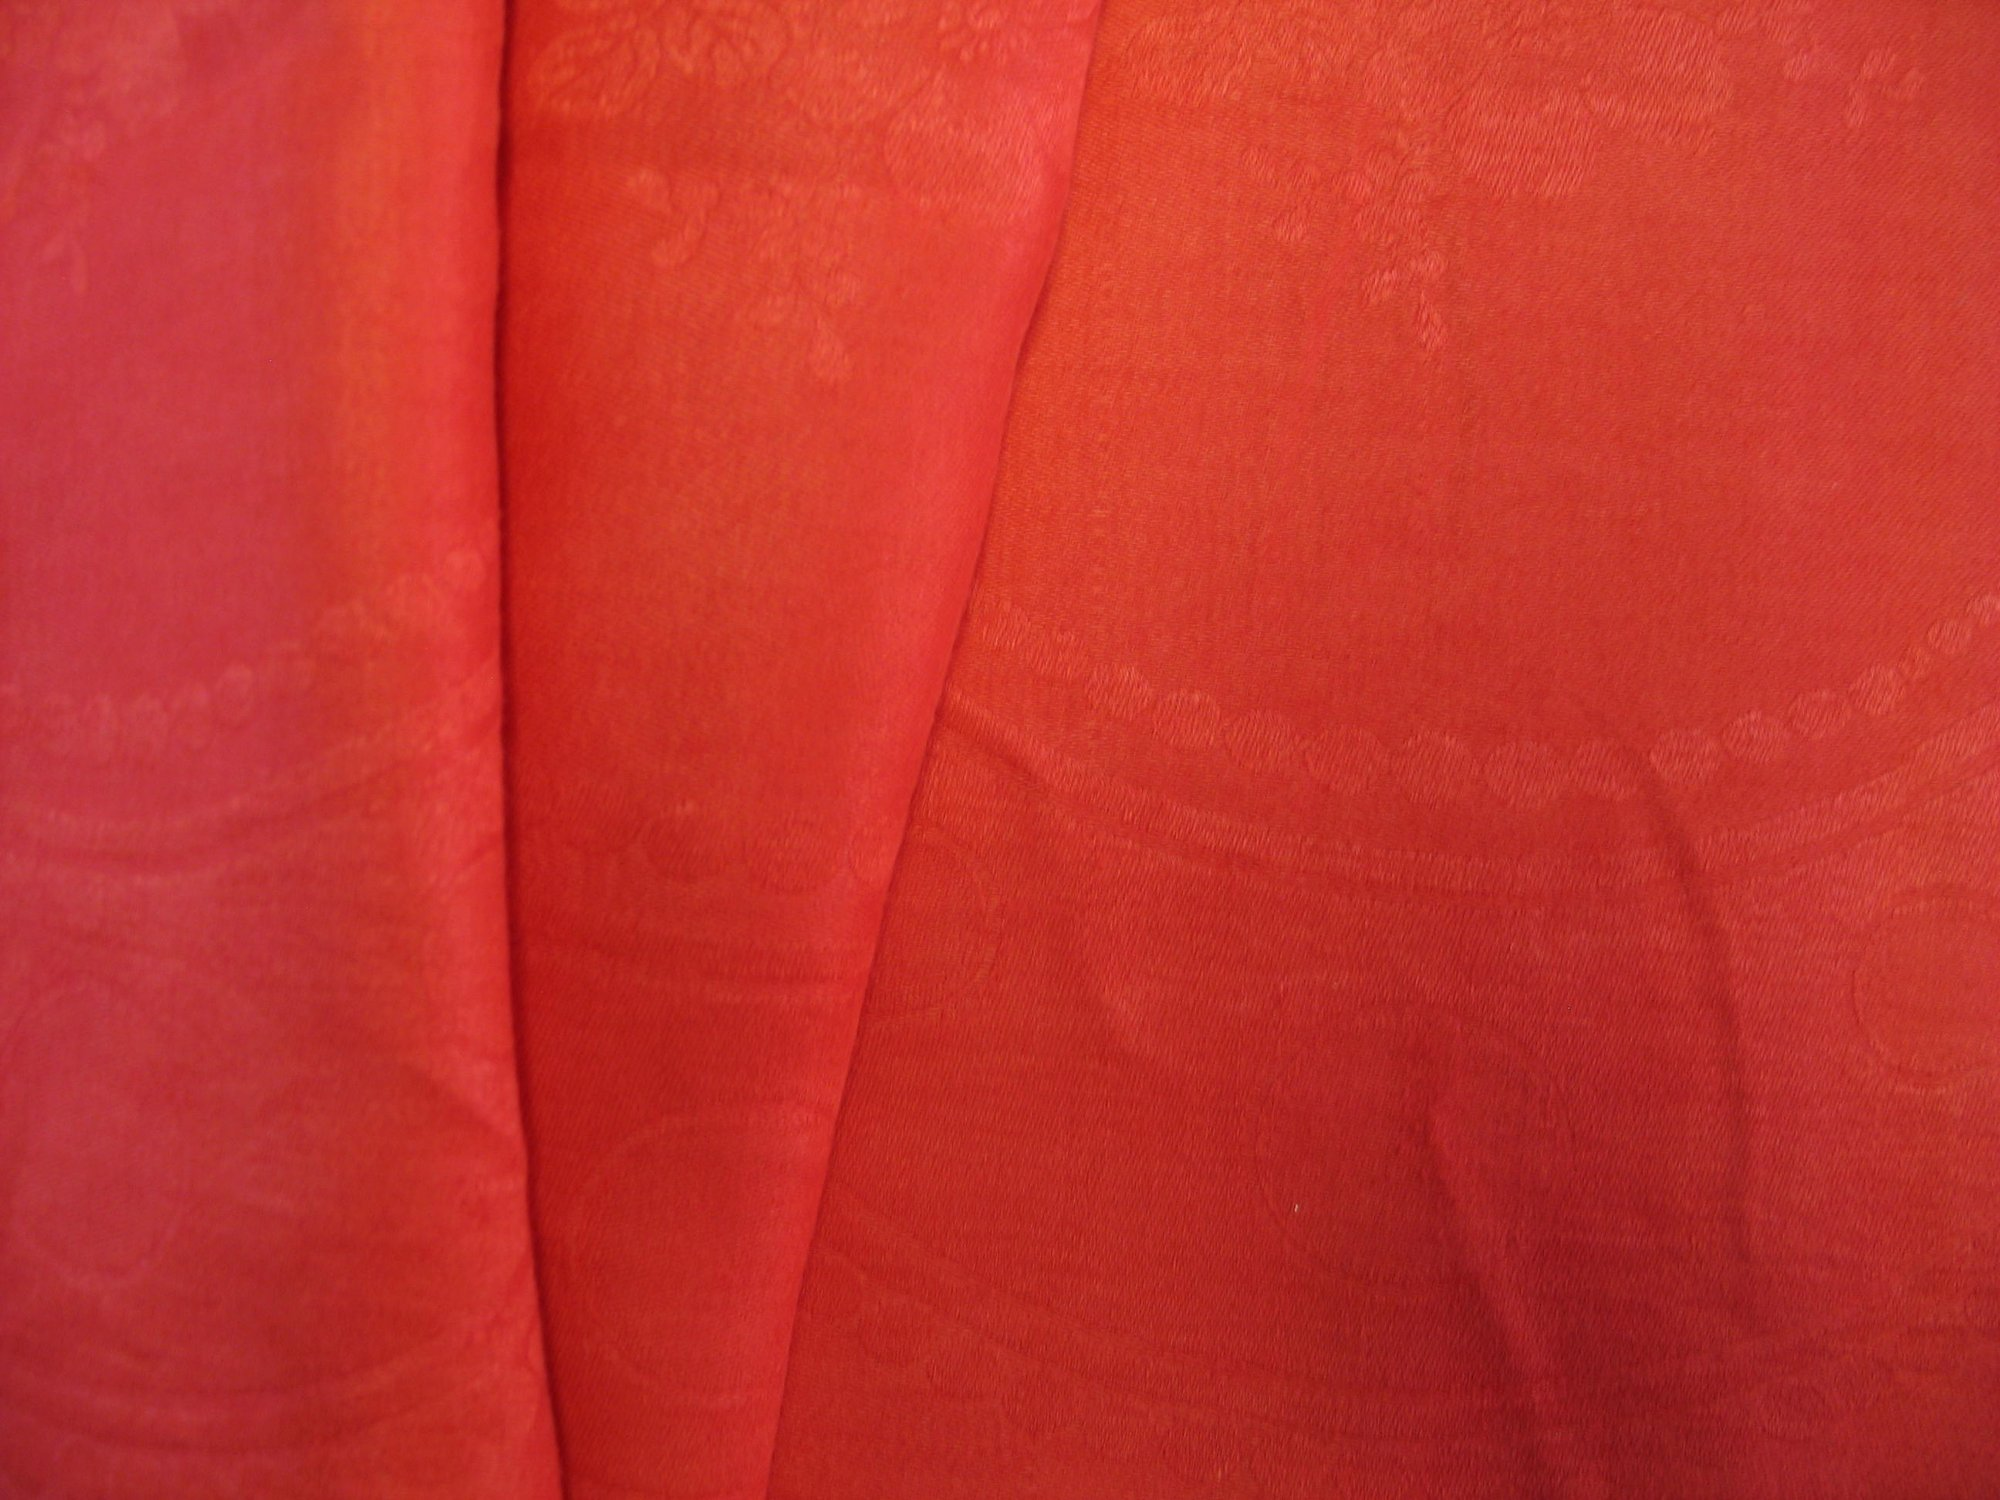 Overdyed Damask Tablecloth - Red-Orange